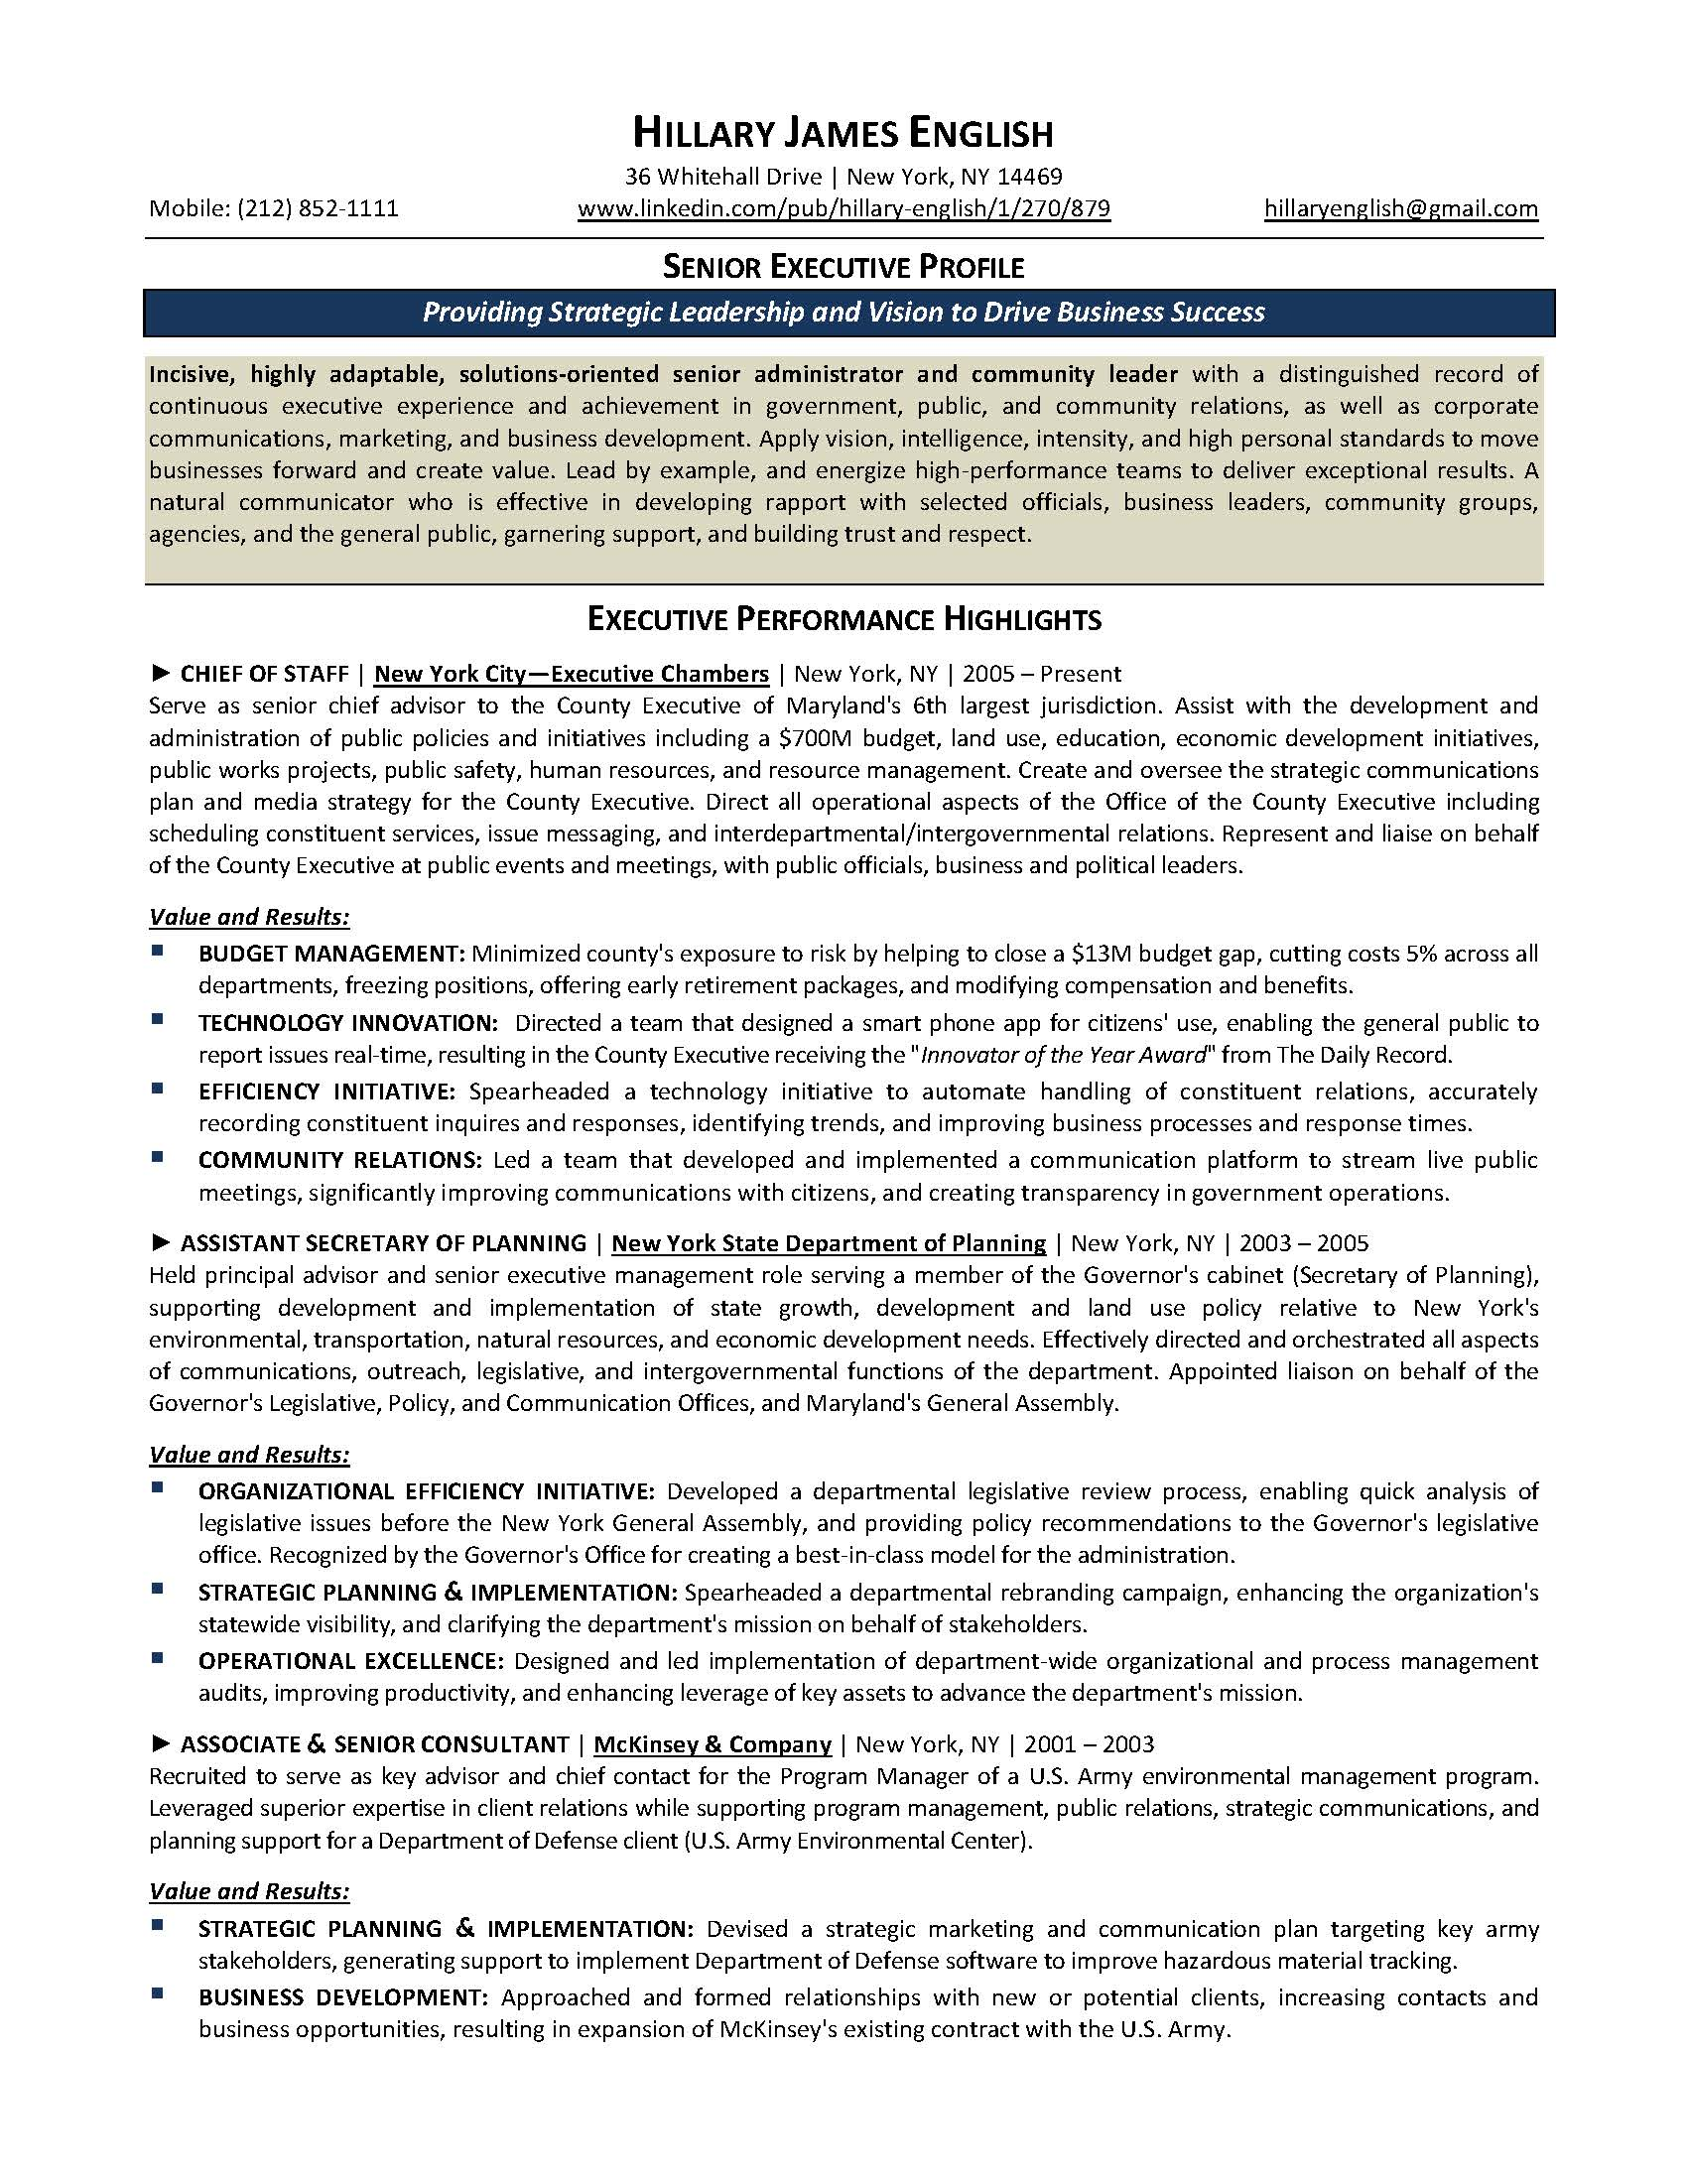 senior executive resume sample provided by elite resume writing services - Executive Resume Writing Services